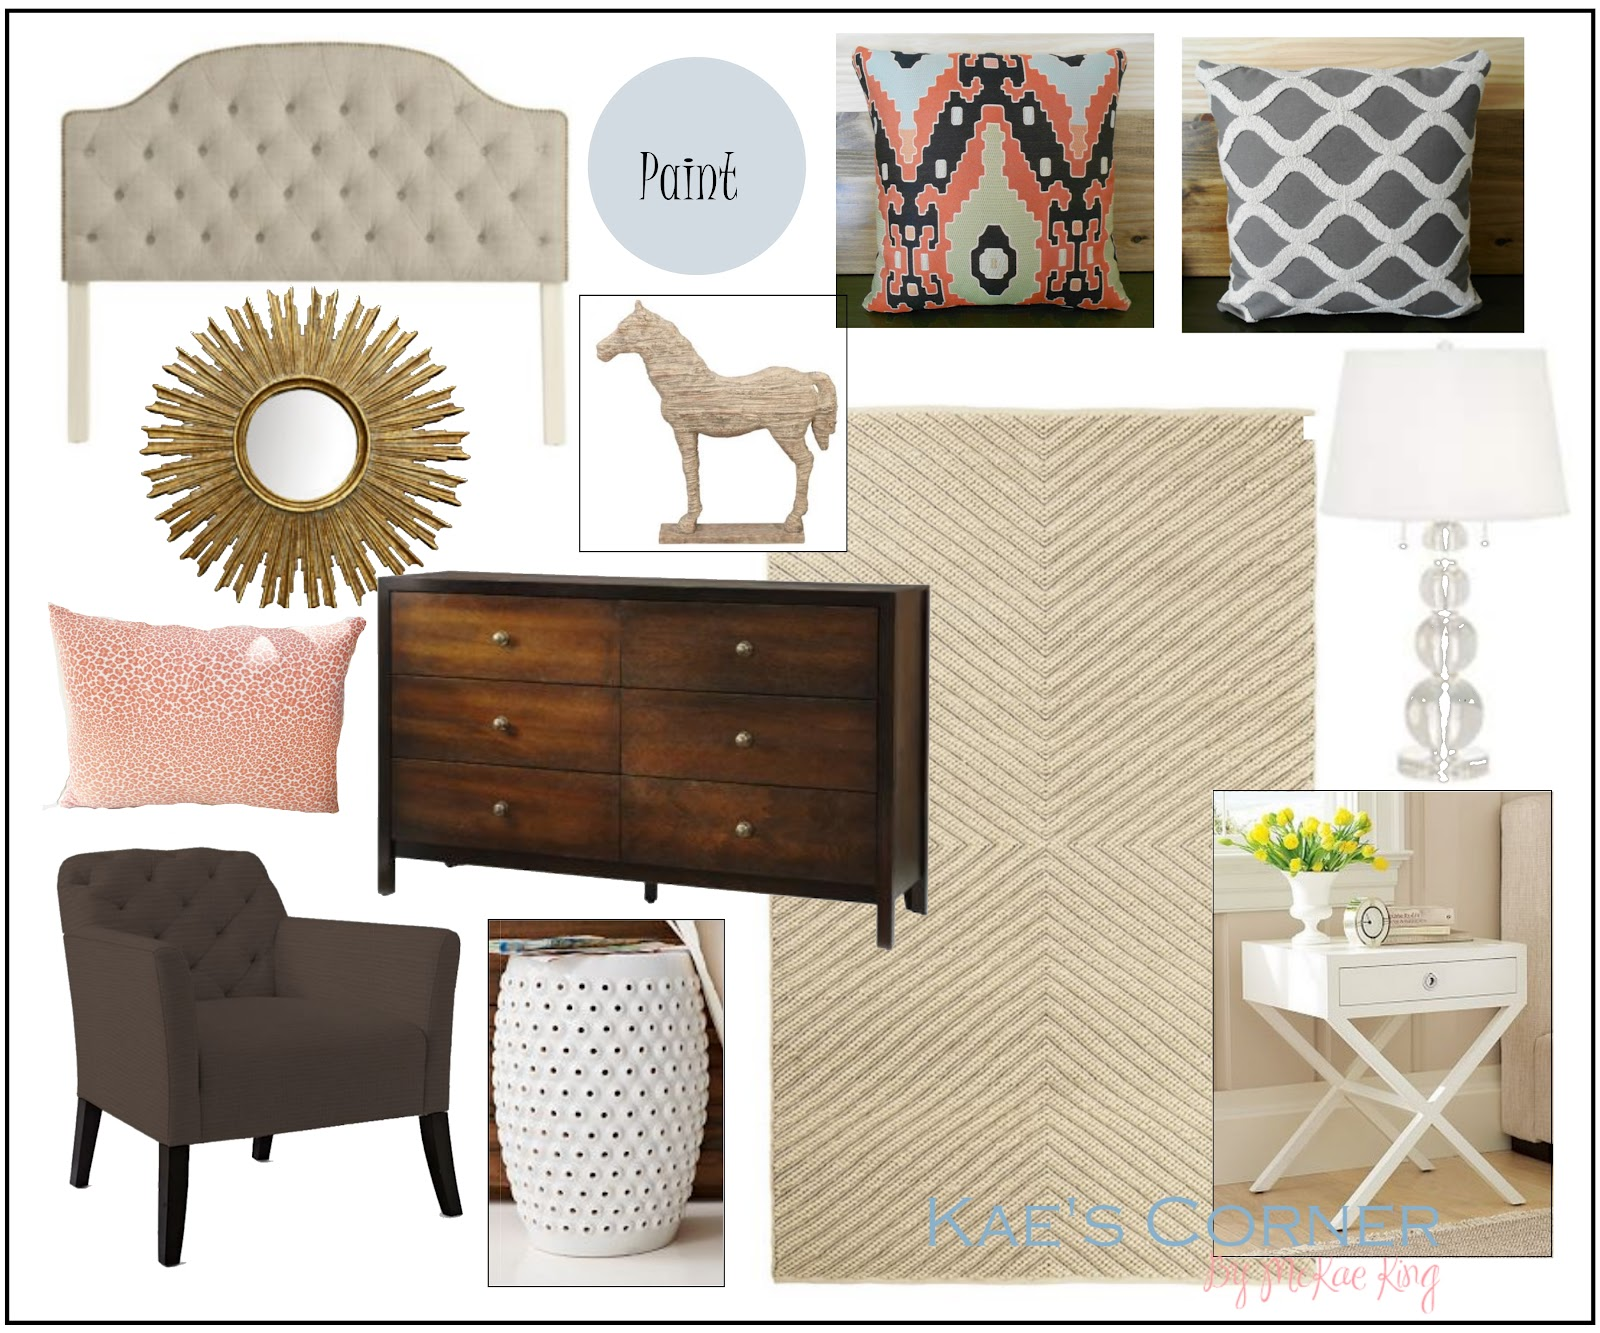 kae 39 s corner design wishing and dreaming bedroom mood board On bedroom boards